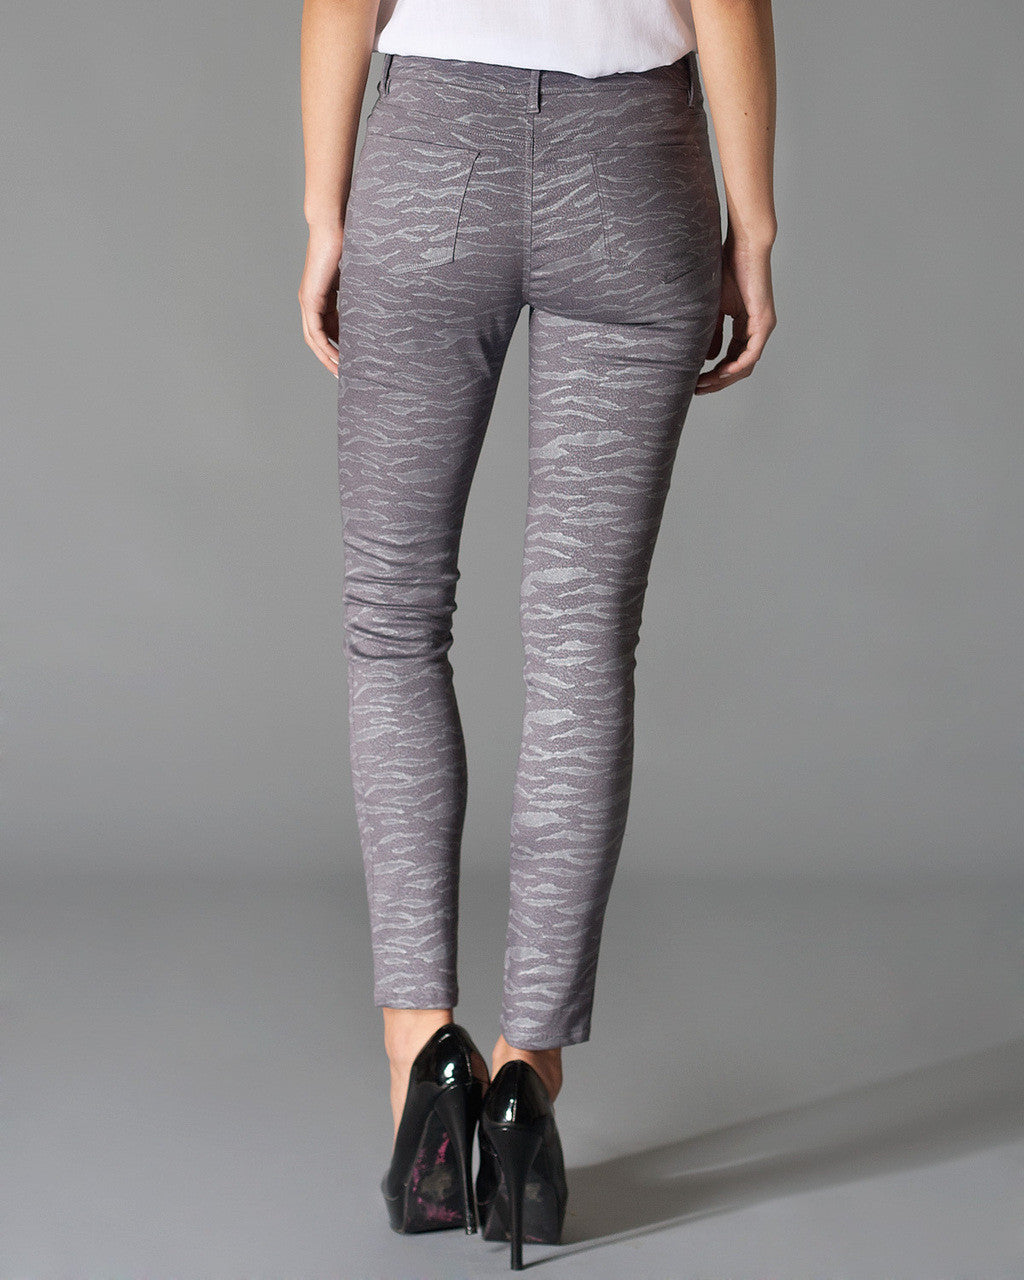 Spirit Animal Skinny Pants, Glittery Grey - The Giant Peach - 2